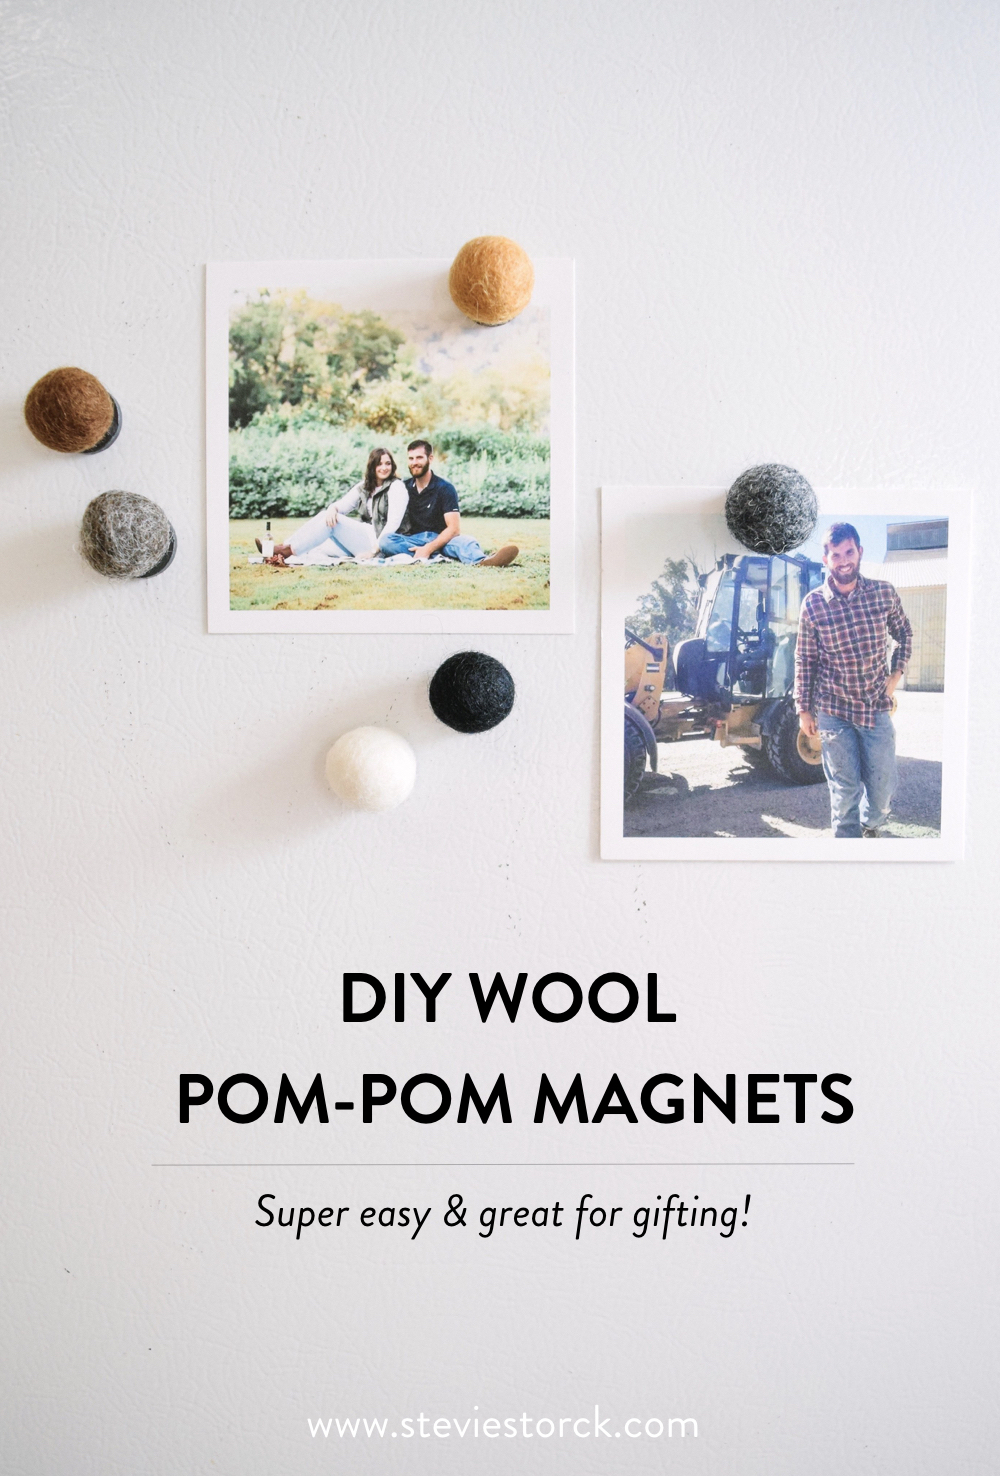 DIY Wool Pom-Pom Magnets.001.jpeg